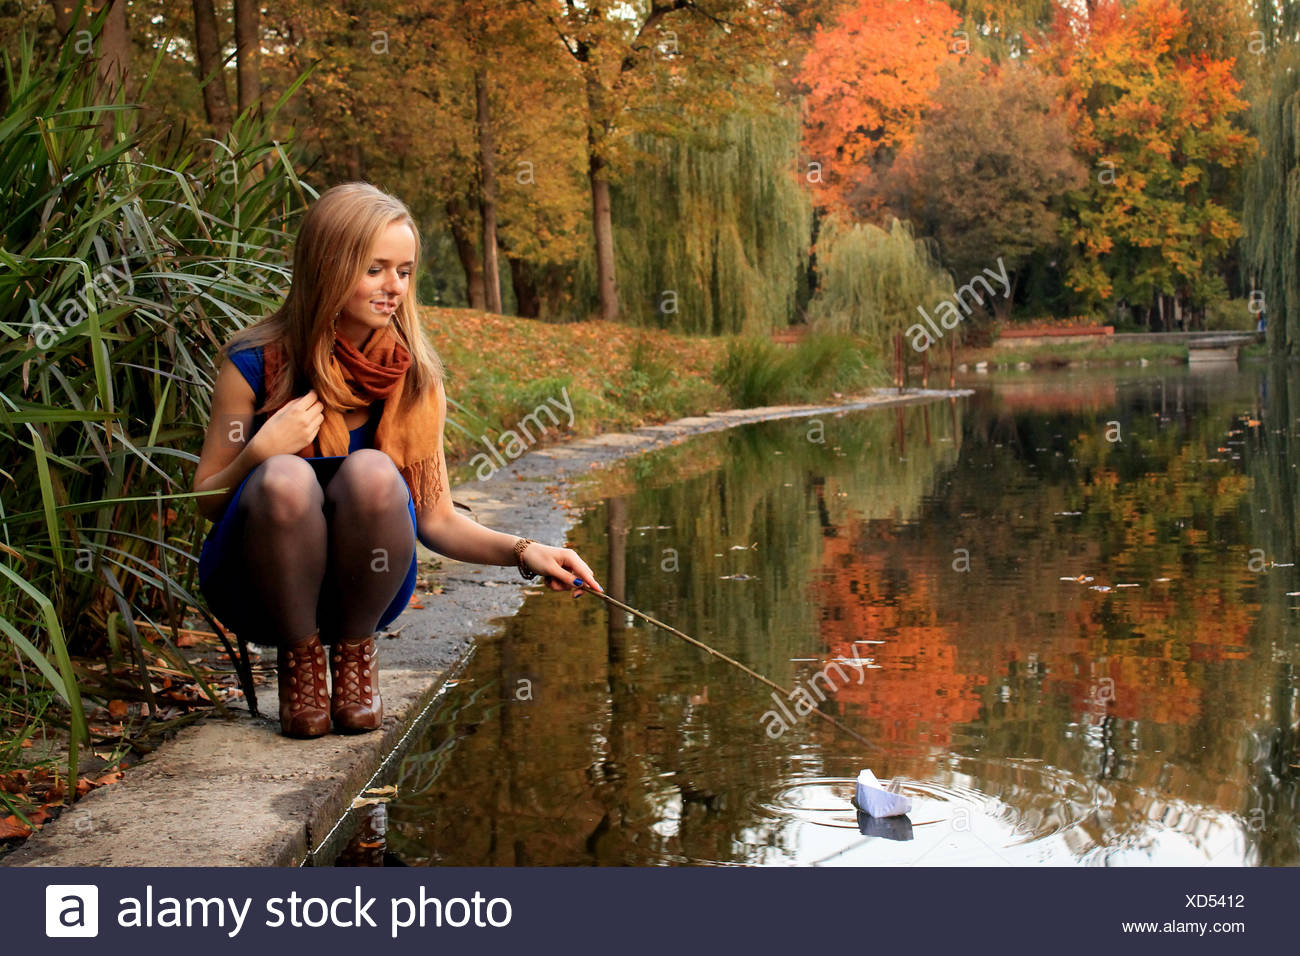 Young woman playing with paper ship on pond - Stock Image